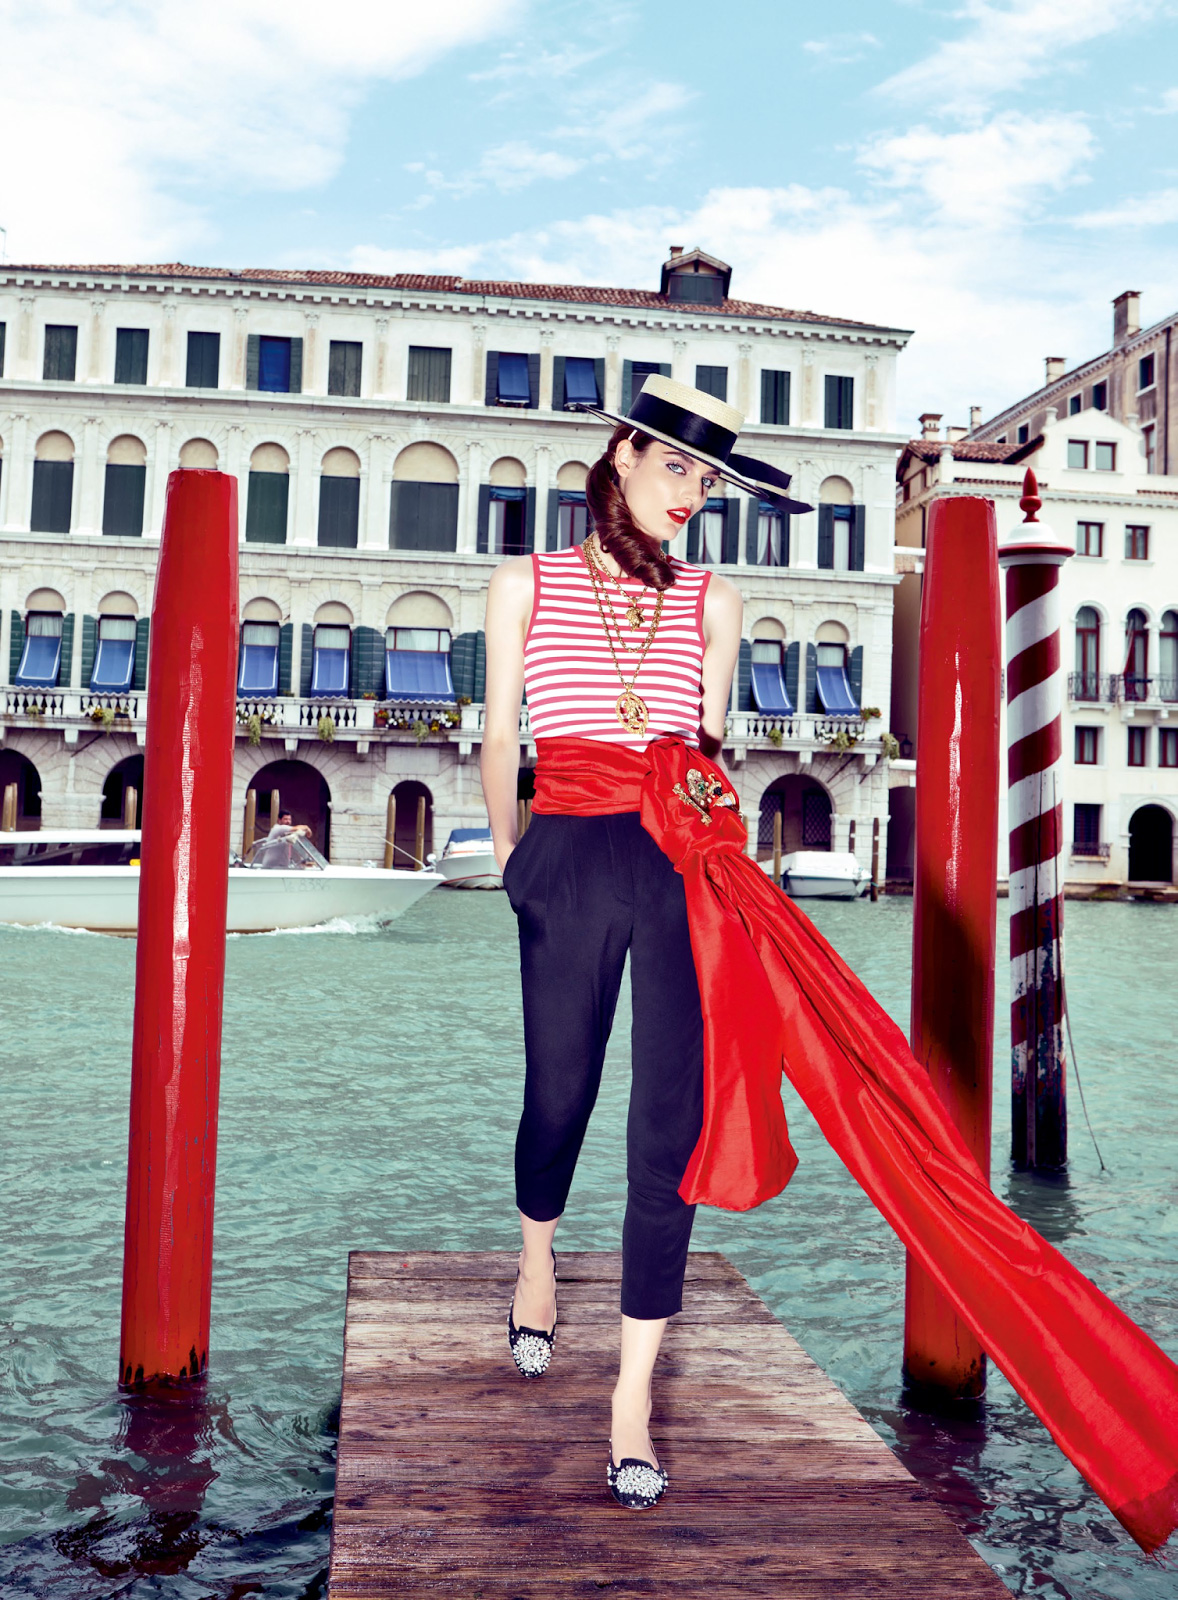 Zuzanna-Bijoch-by-Pierpaolo-Ferrari-for-Vogue-Japan-February-2014-(My-Fascination-with-Venice)-(4)